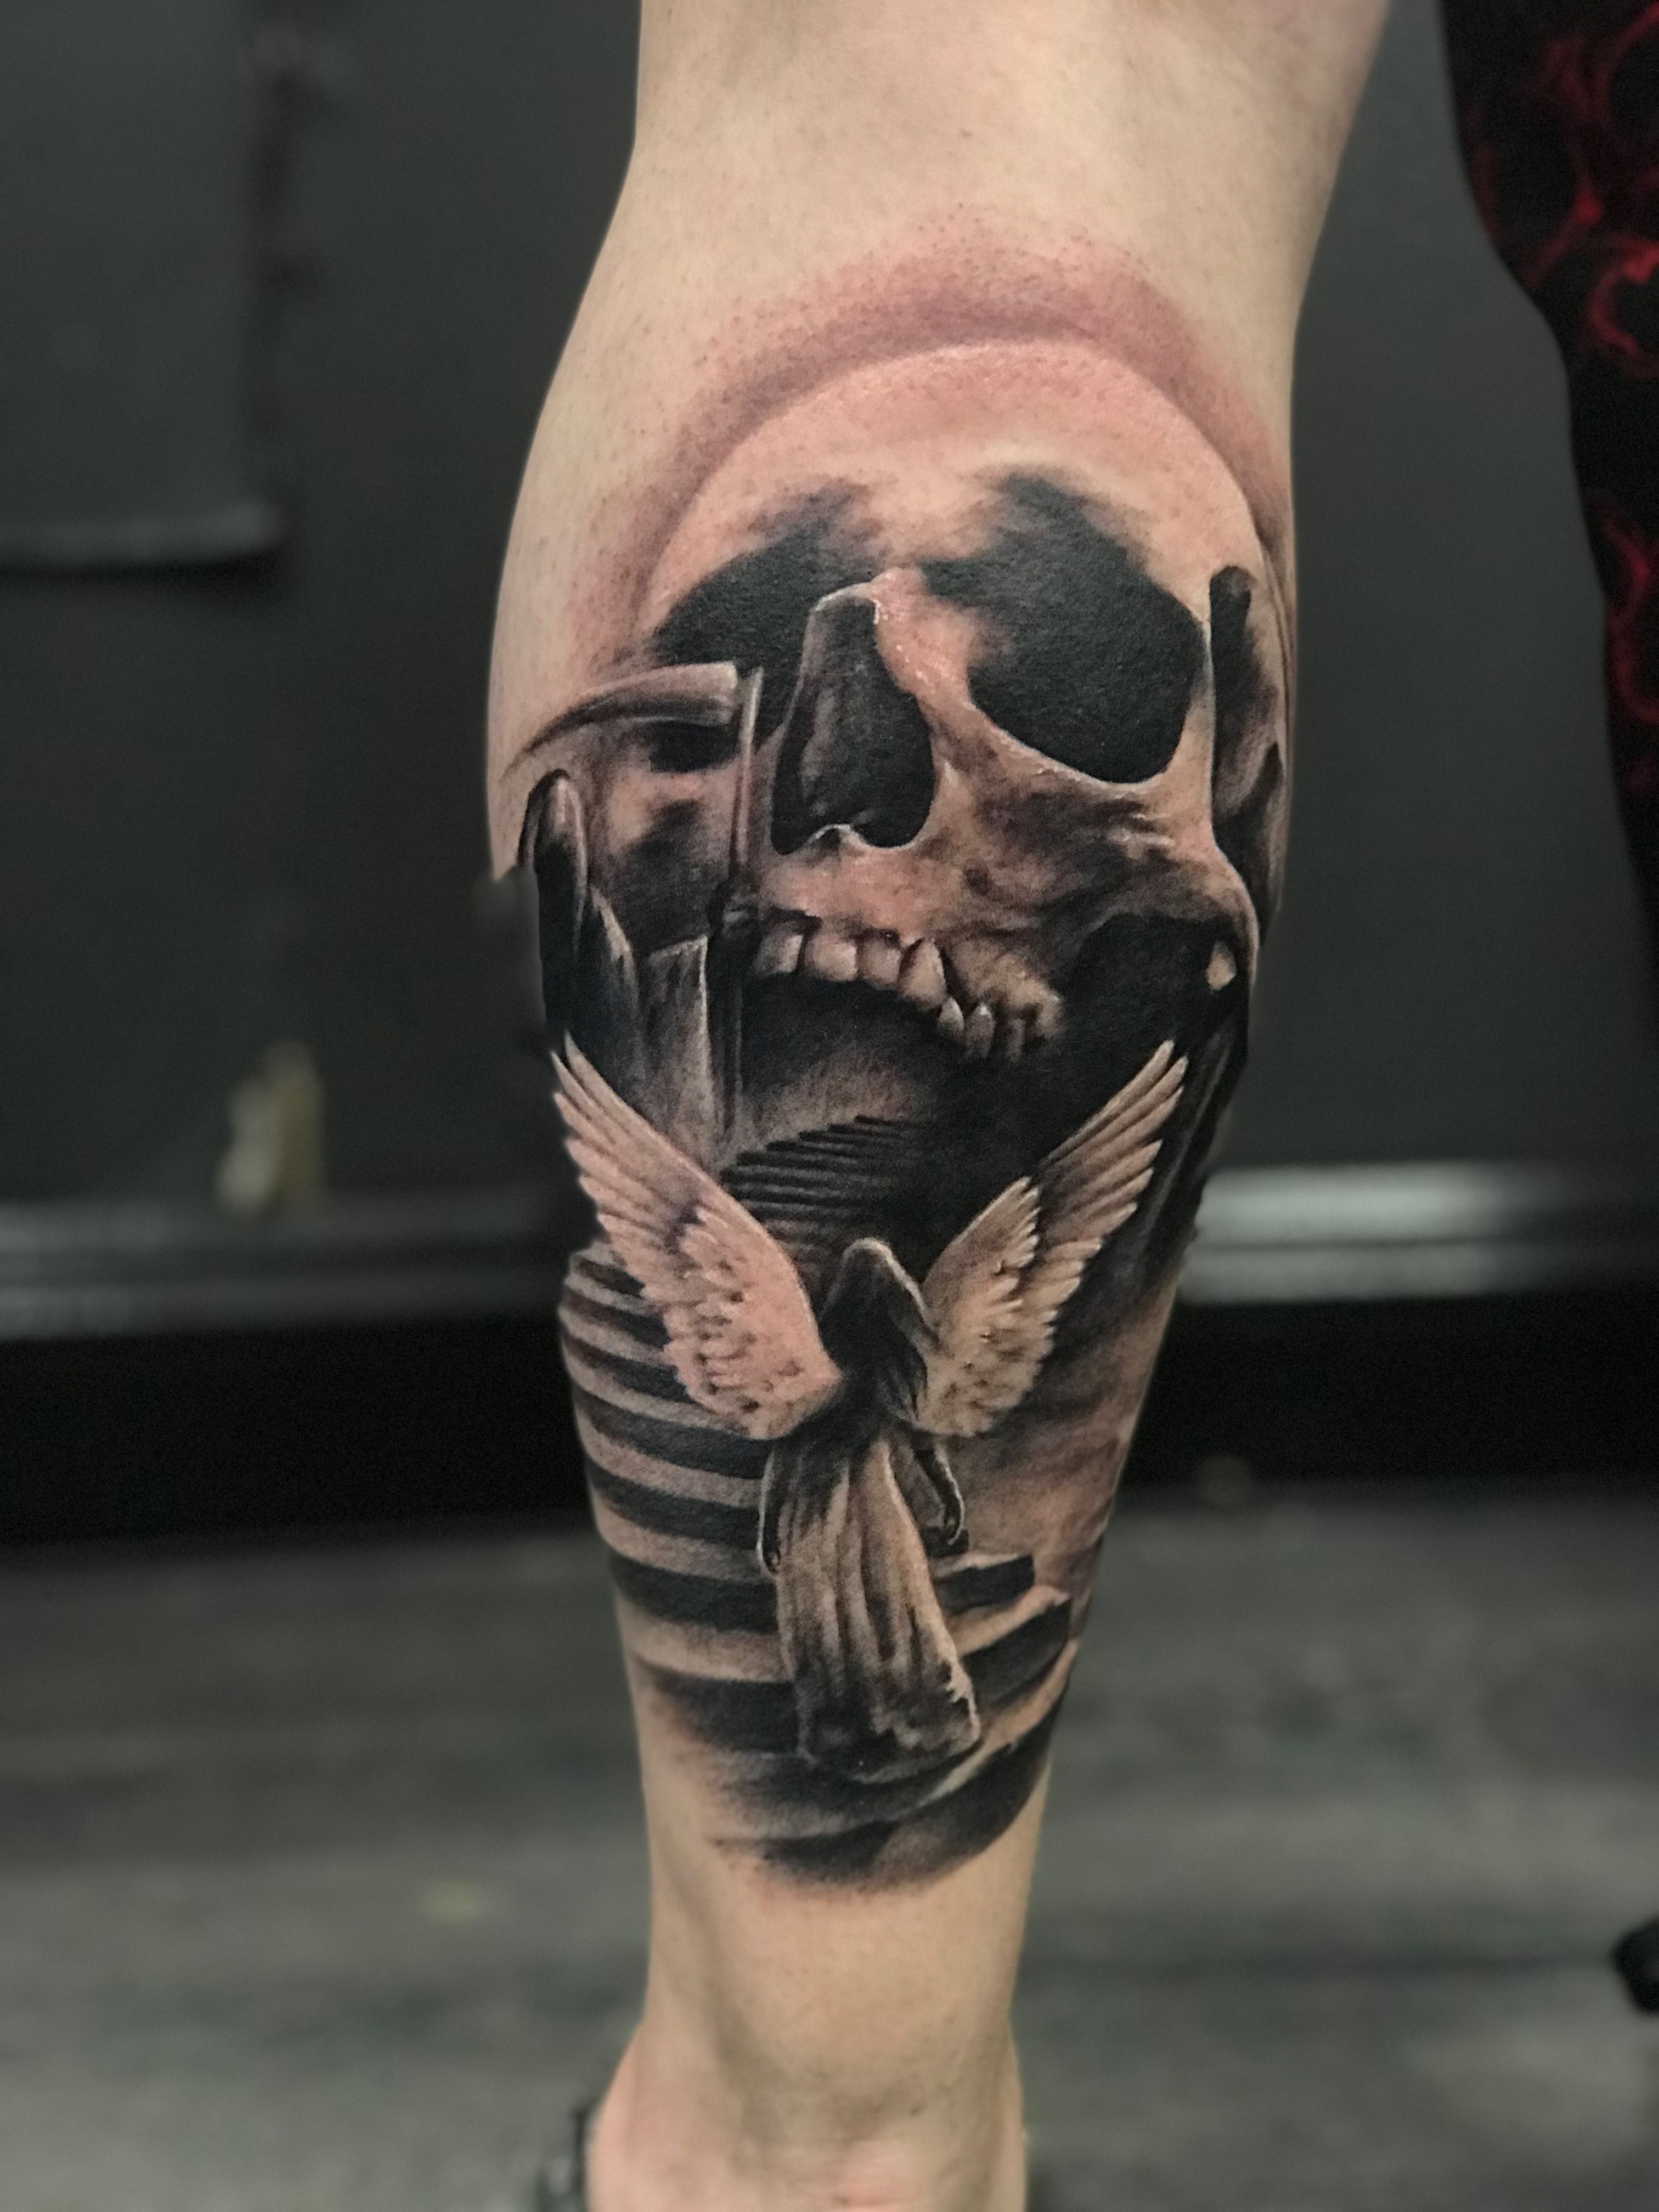 e002aef02 Skull and staircase tattoo by Borislav! Limited availability at Revival Tattoo  Studio!